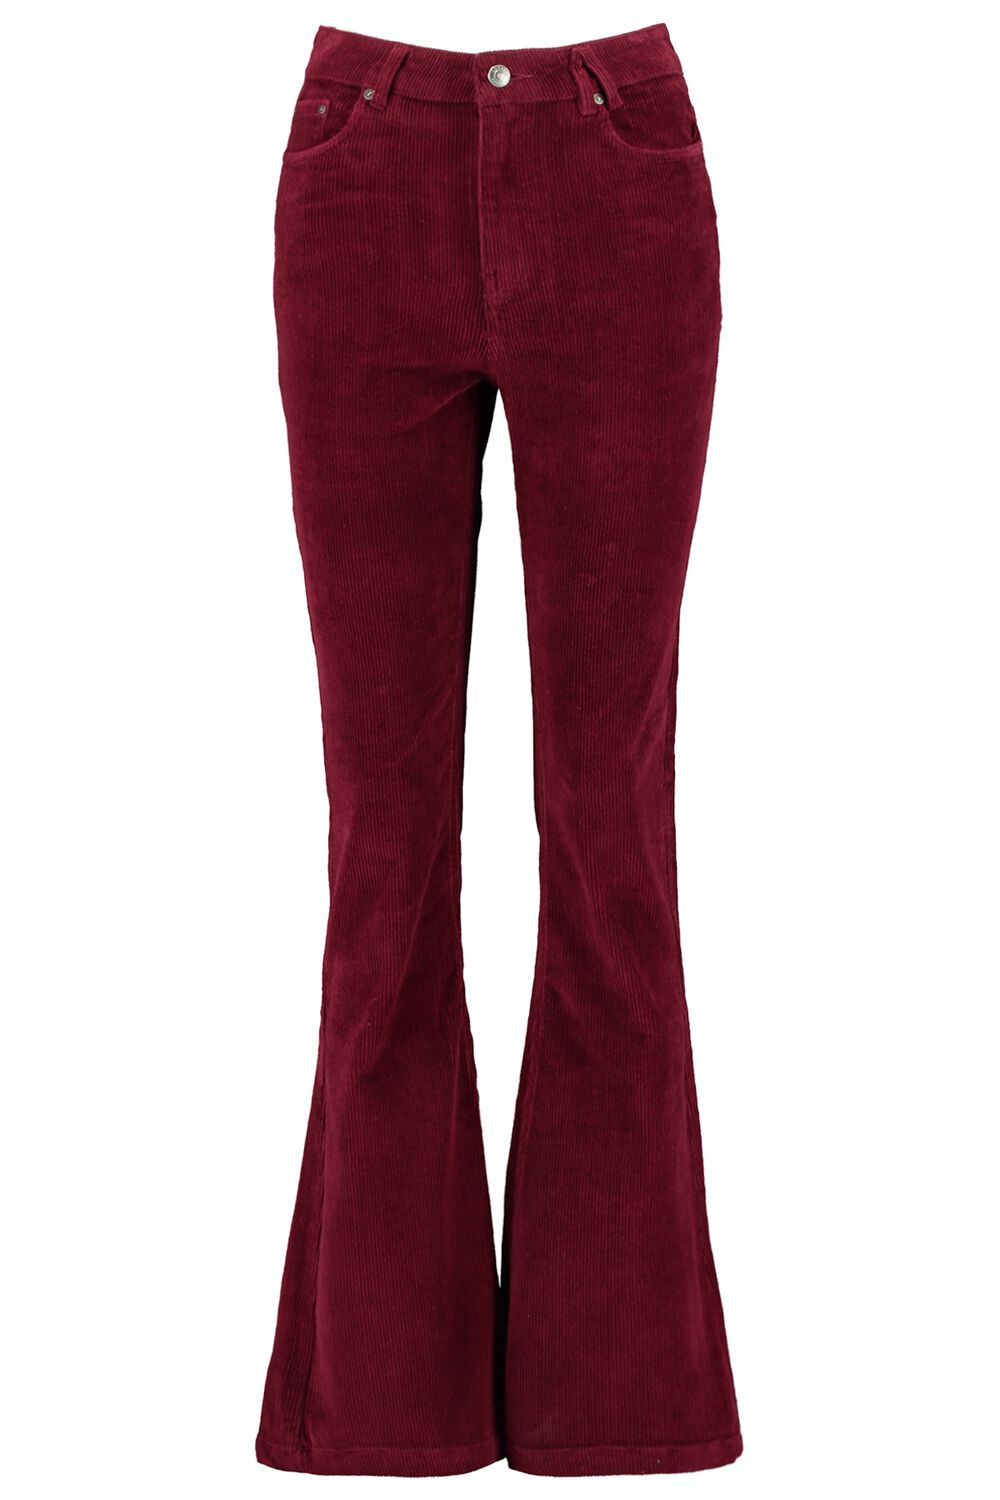 America Today Dames Broek Flared Peggy Rood